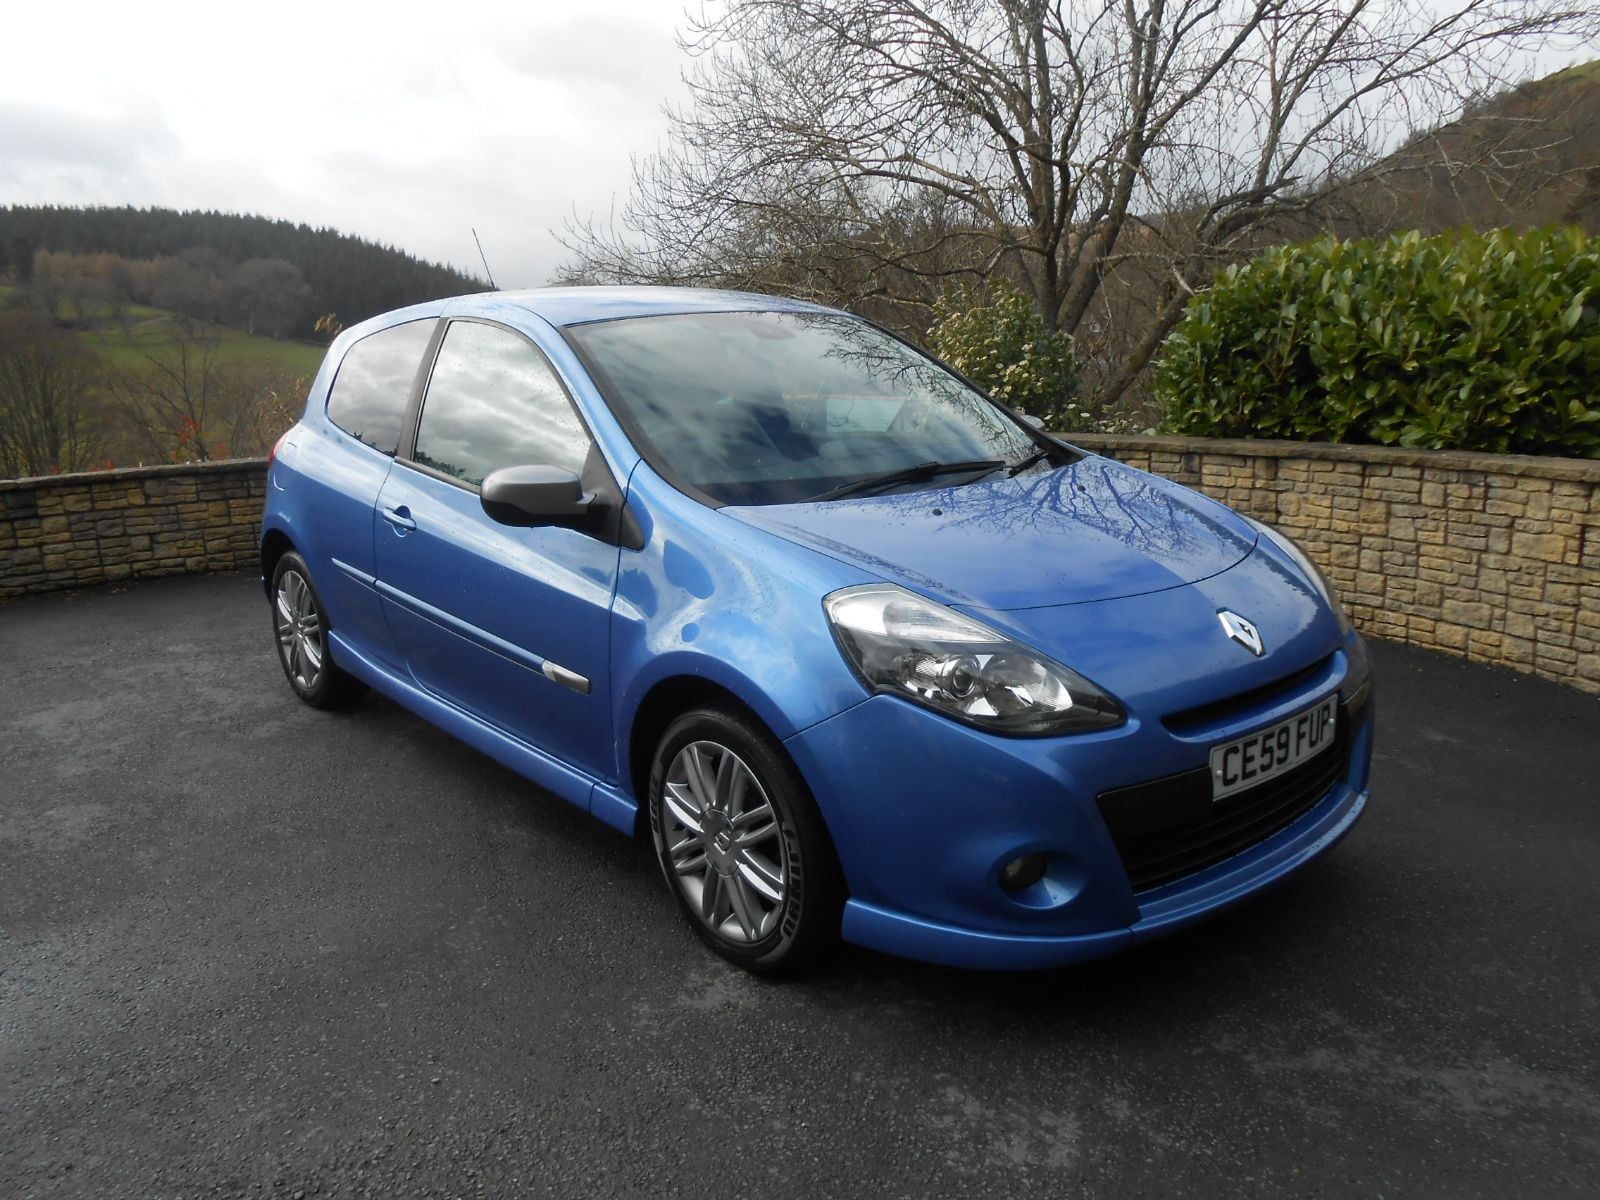 renault clio 1 6 gt 3 door car for sale llanidloes powys mid wales kevin jones cars used cars. Black Bedroom Furniture Sets. Home Design Ideas